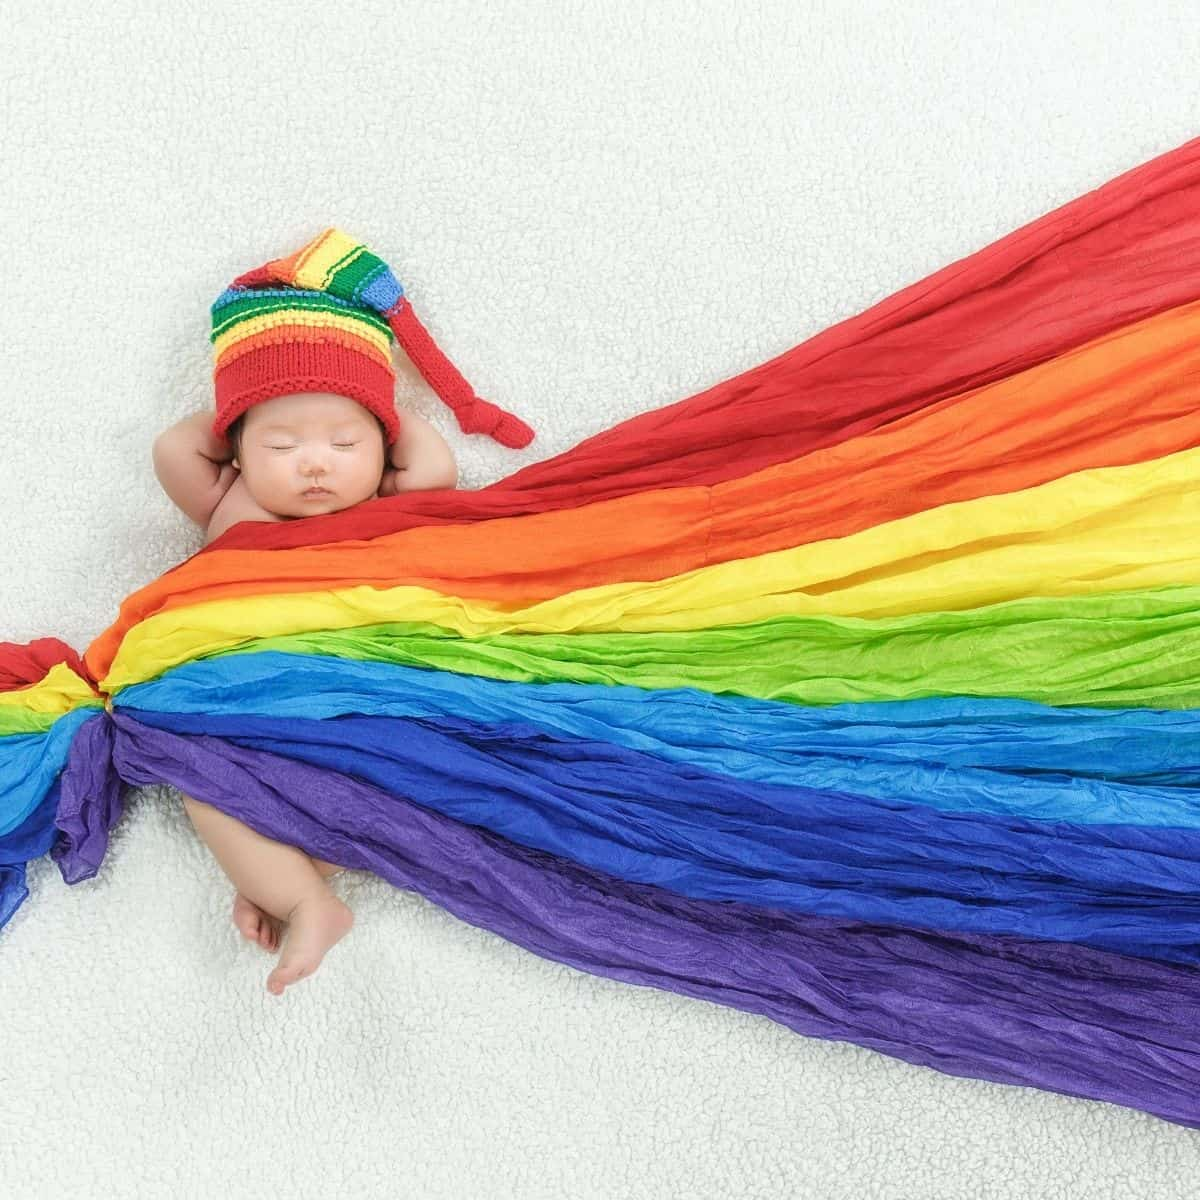 infant wearing a rainbow colored hat and wrapped in rainbow blanket